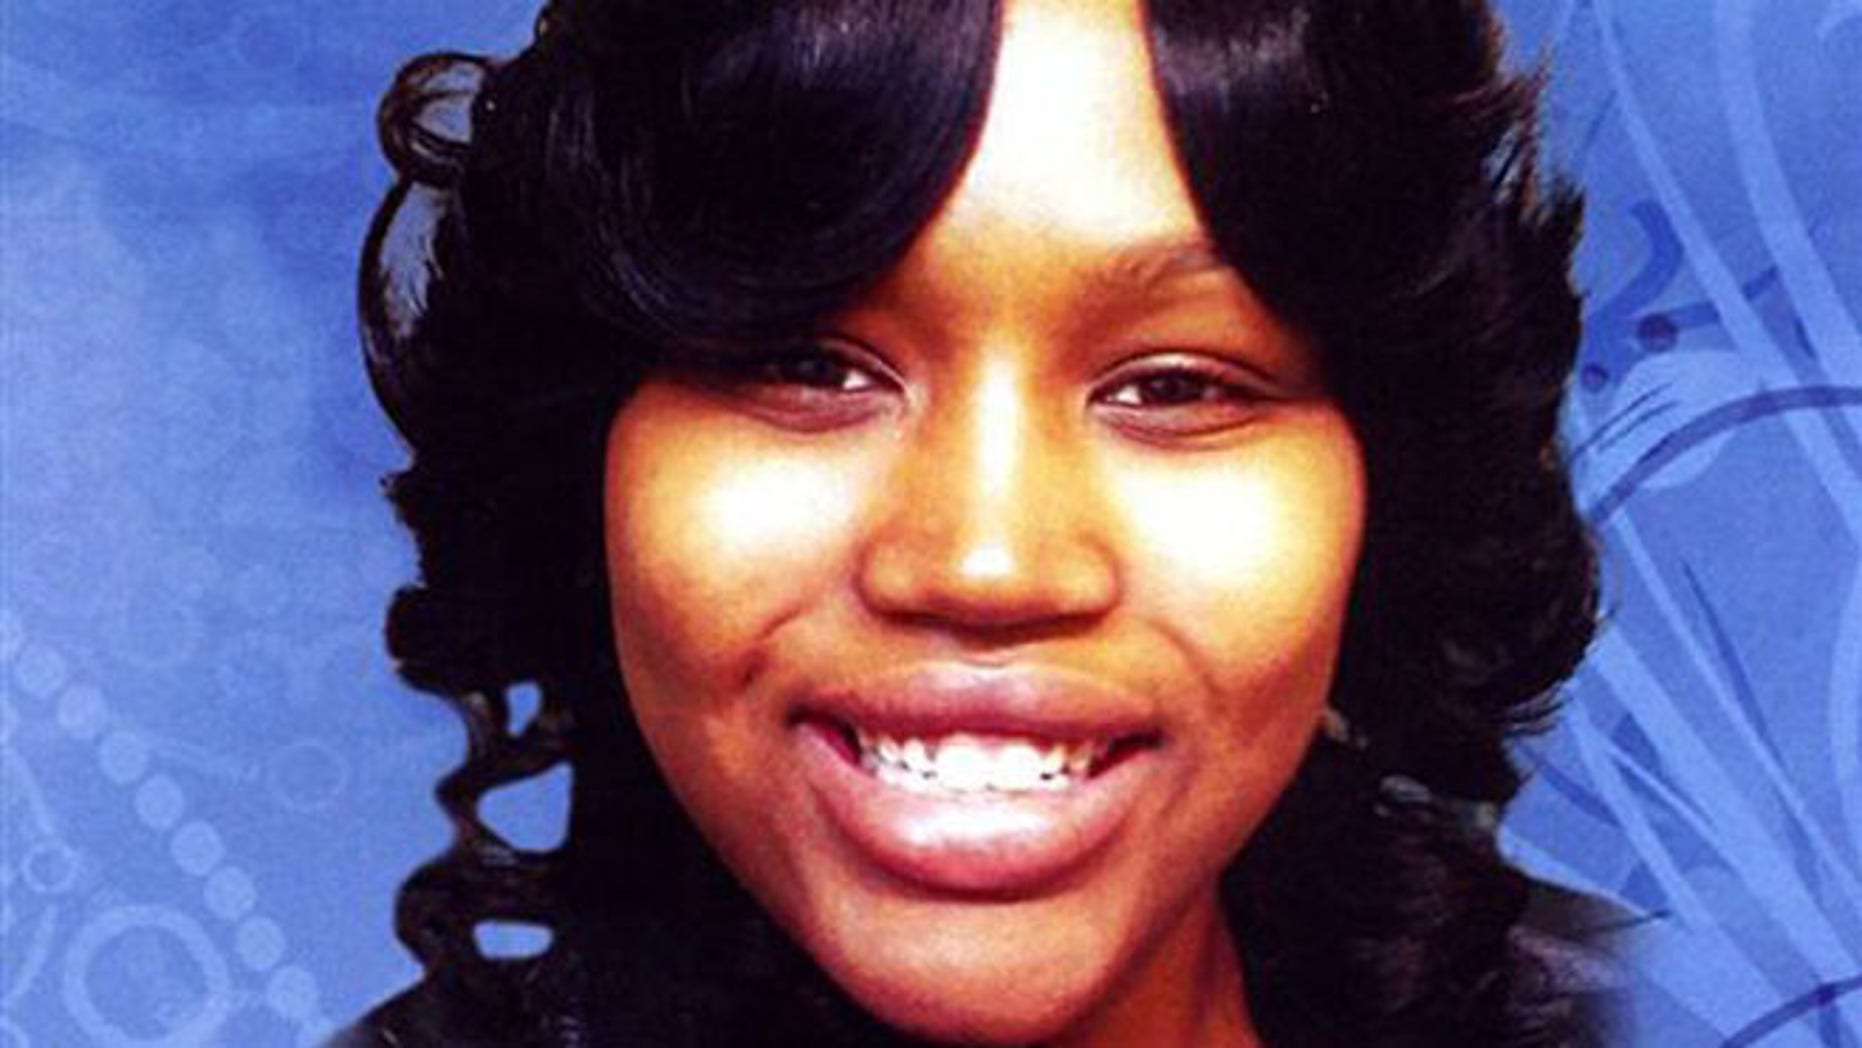 This undated file photo is the cover of a funeral program showing 19-year-old Renisha McBride from a service in Detroit.